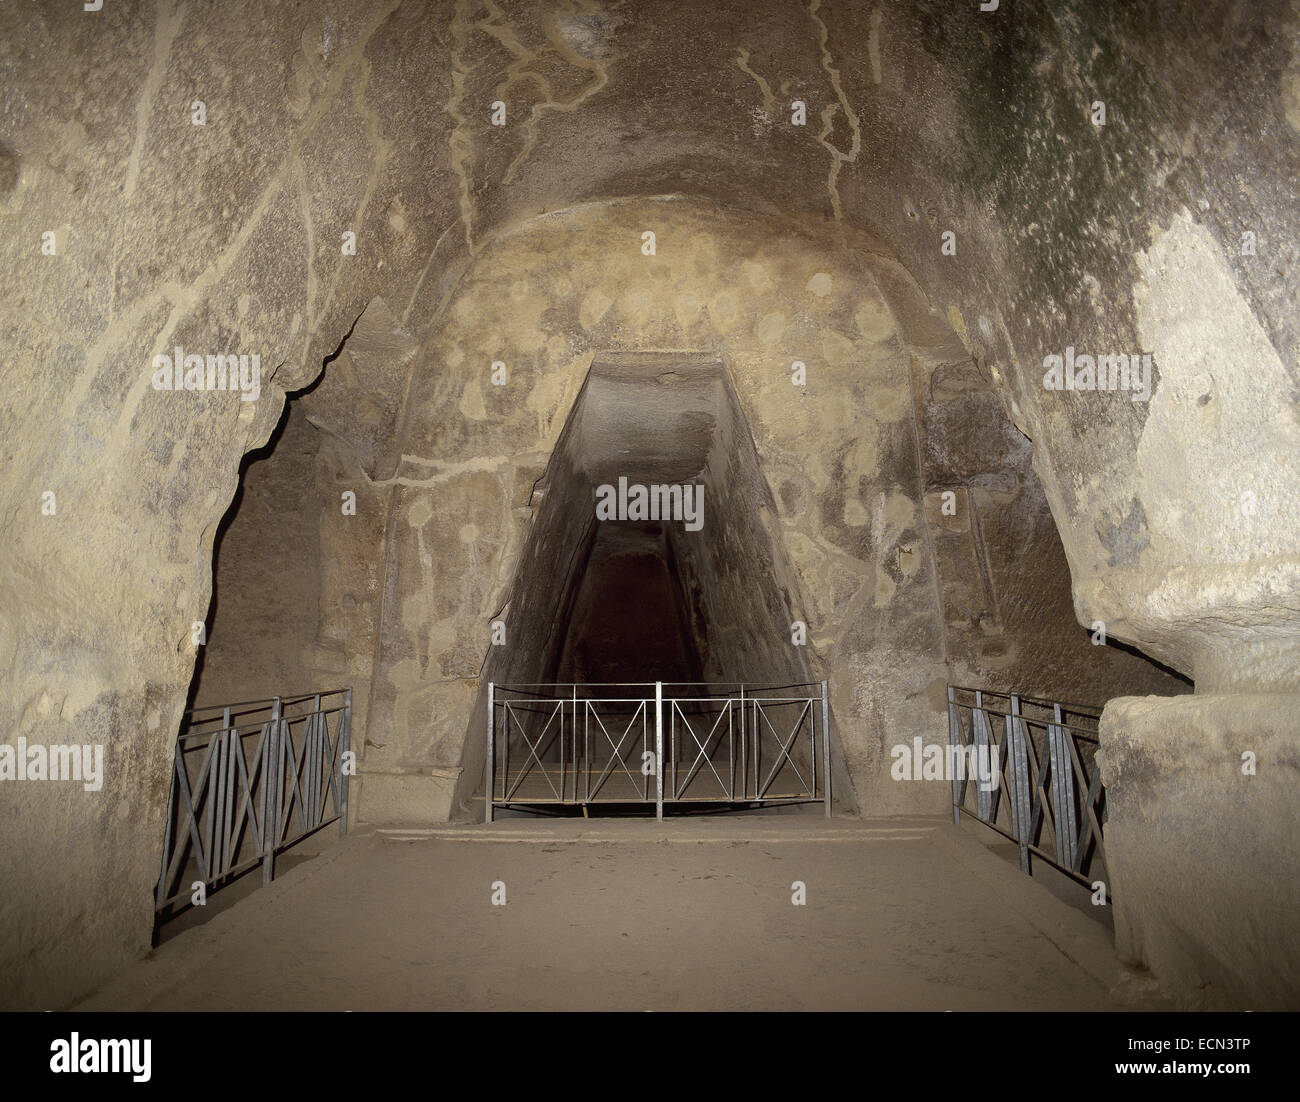 The Cave of the Cumaean Sibyl, a trapezoidal passage that leads to an innermost chamber where the Sibyl was thought - Stock Image